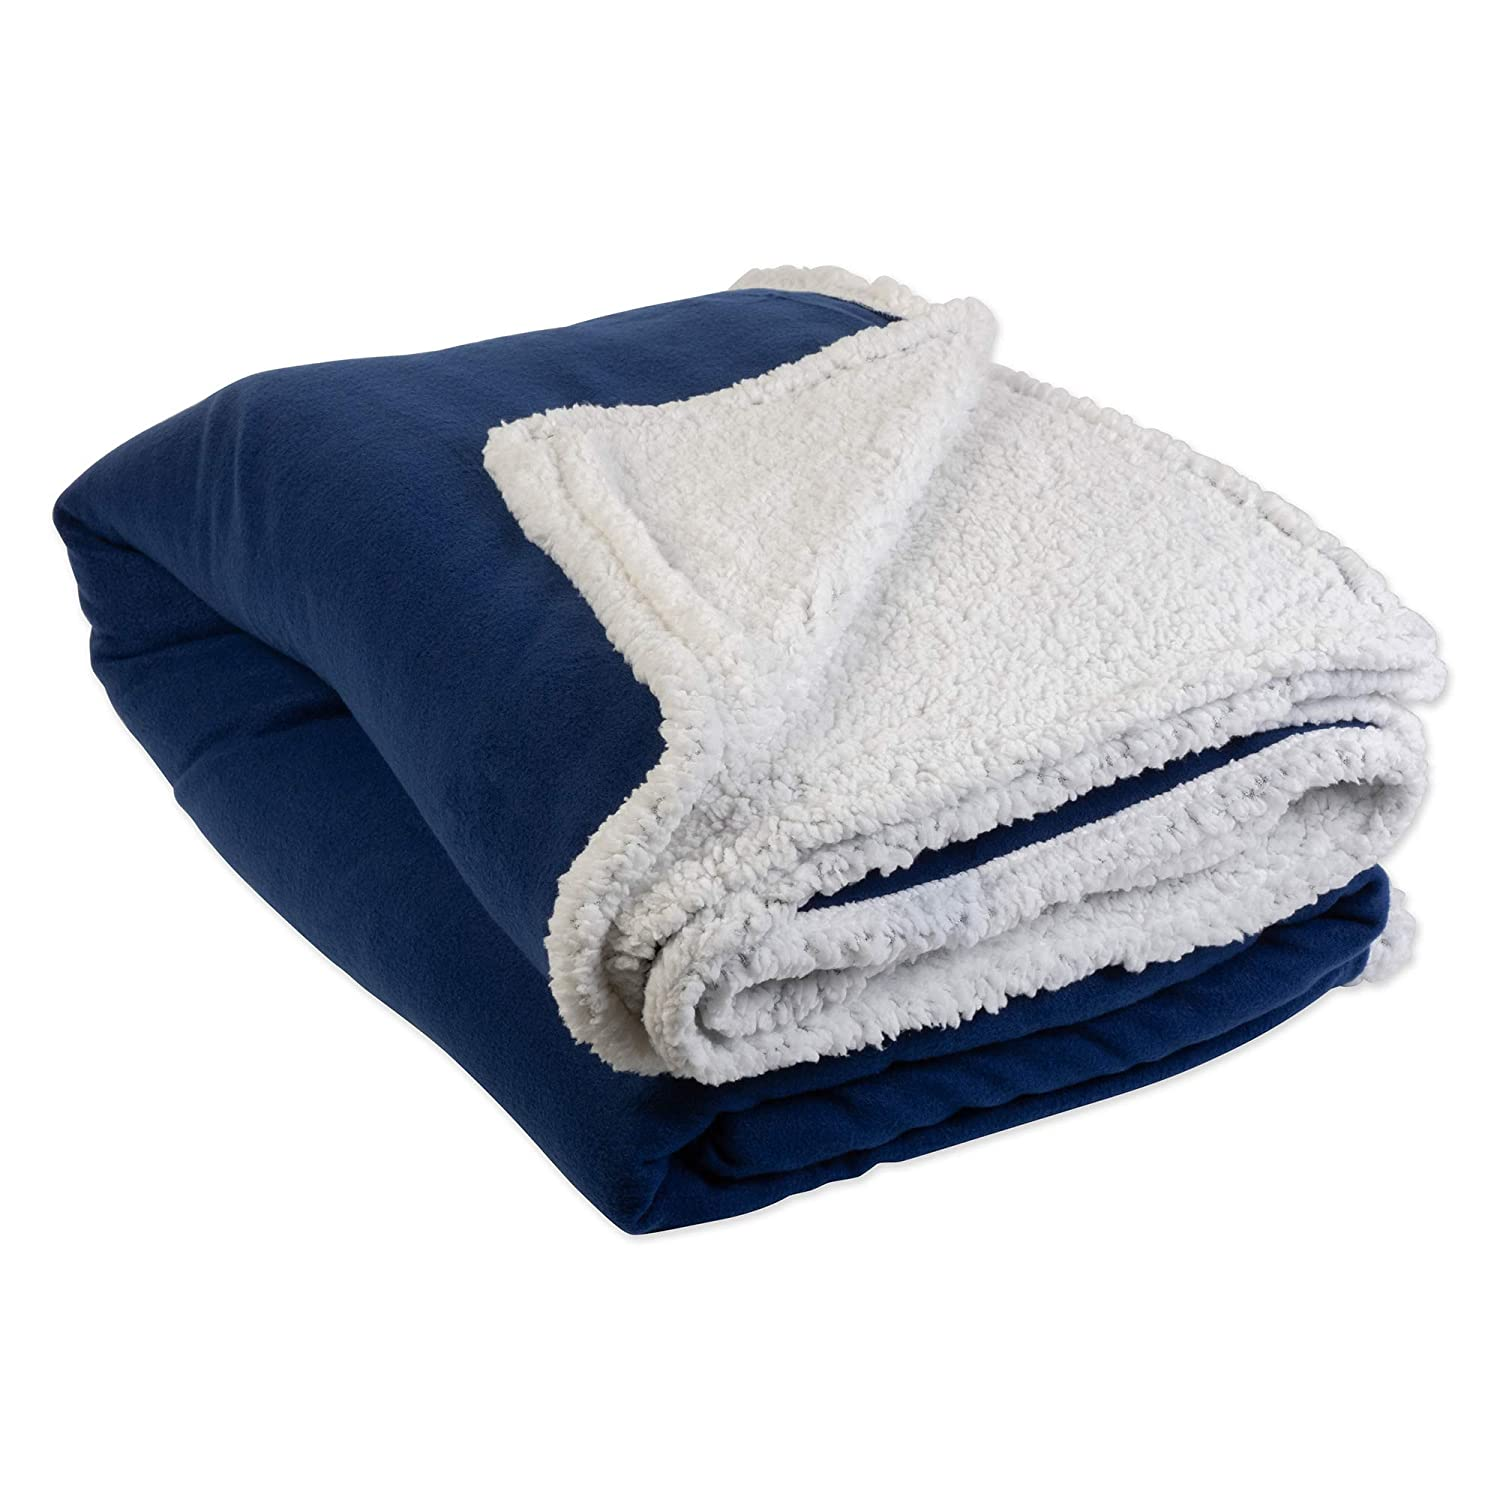 Travel-Patriot Blue J /& M Home Fashions 70046 Chair Reversible Fuzzy Soft Warm Breathable Fluffy for Bed Couch Twin//Twin XL Heavyweight Sherpa Fleece Throw Blanket 60x96 Beach Camping Picnic